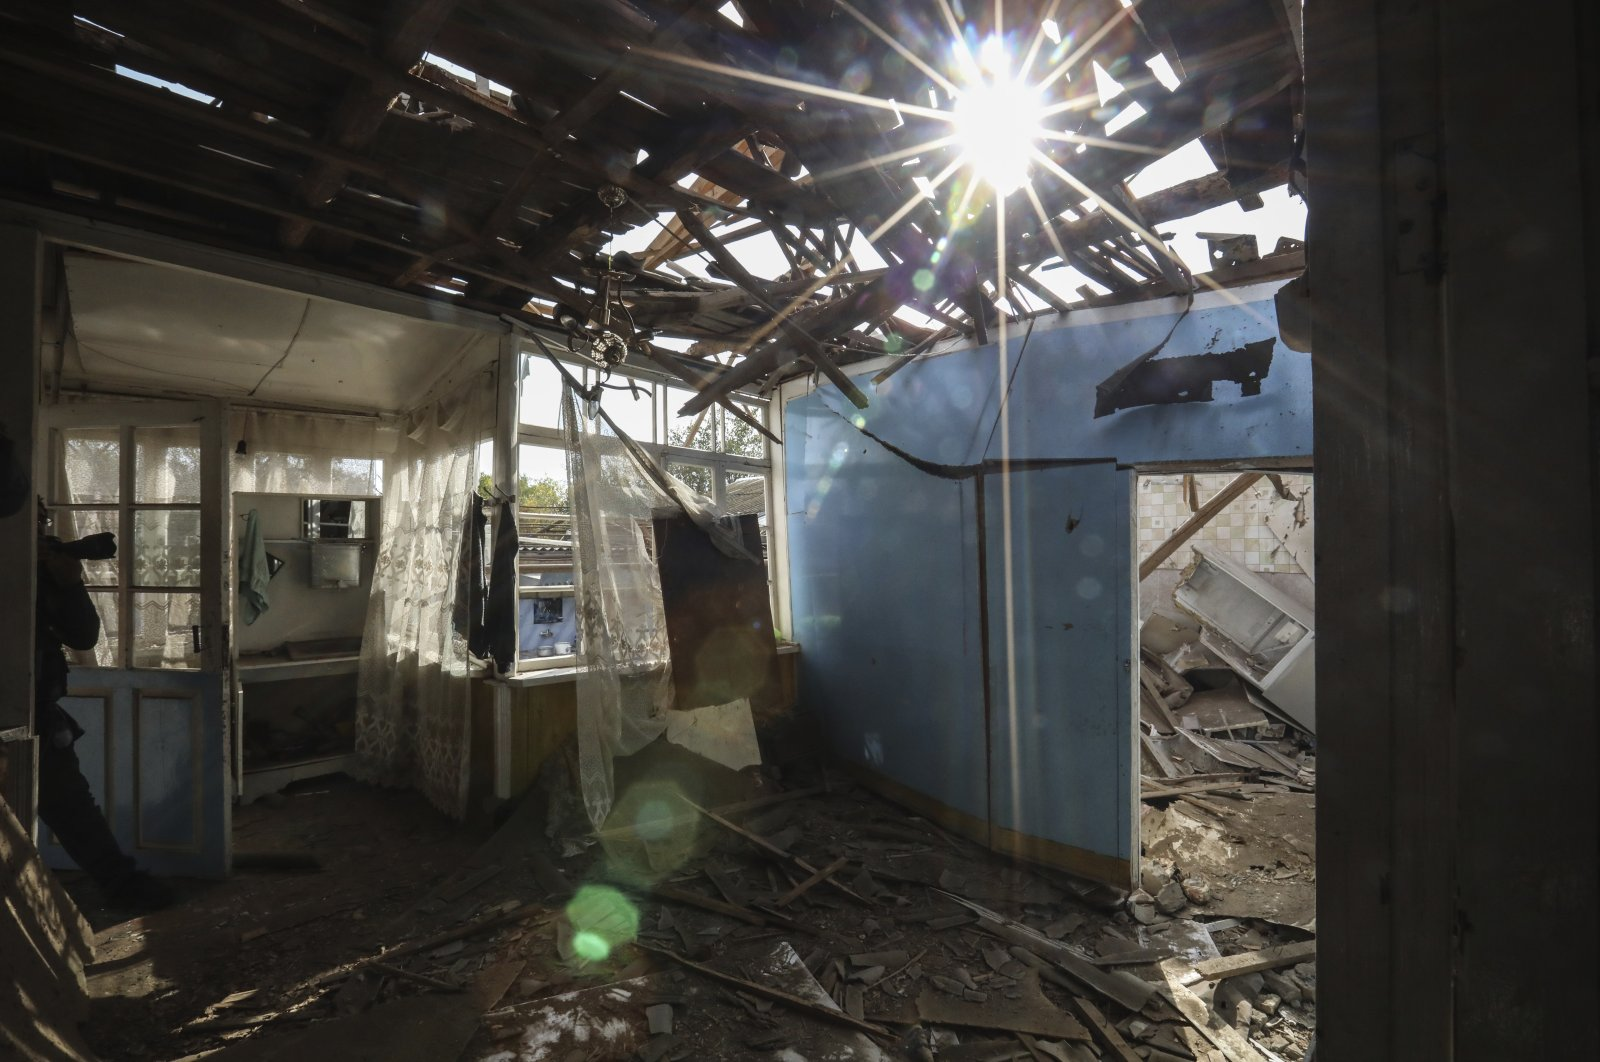 A view inside a destroyed house in a residential area after shelling by Armenian forces in Tartar, the capital of the Tartar region of Azerbaijan, Oct. 26, 2020. (AP Photo)